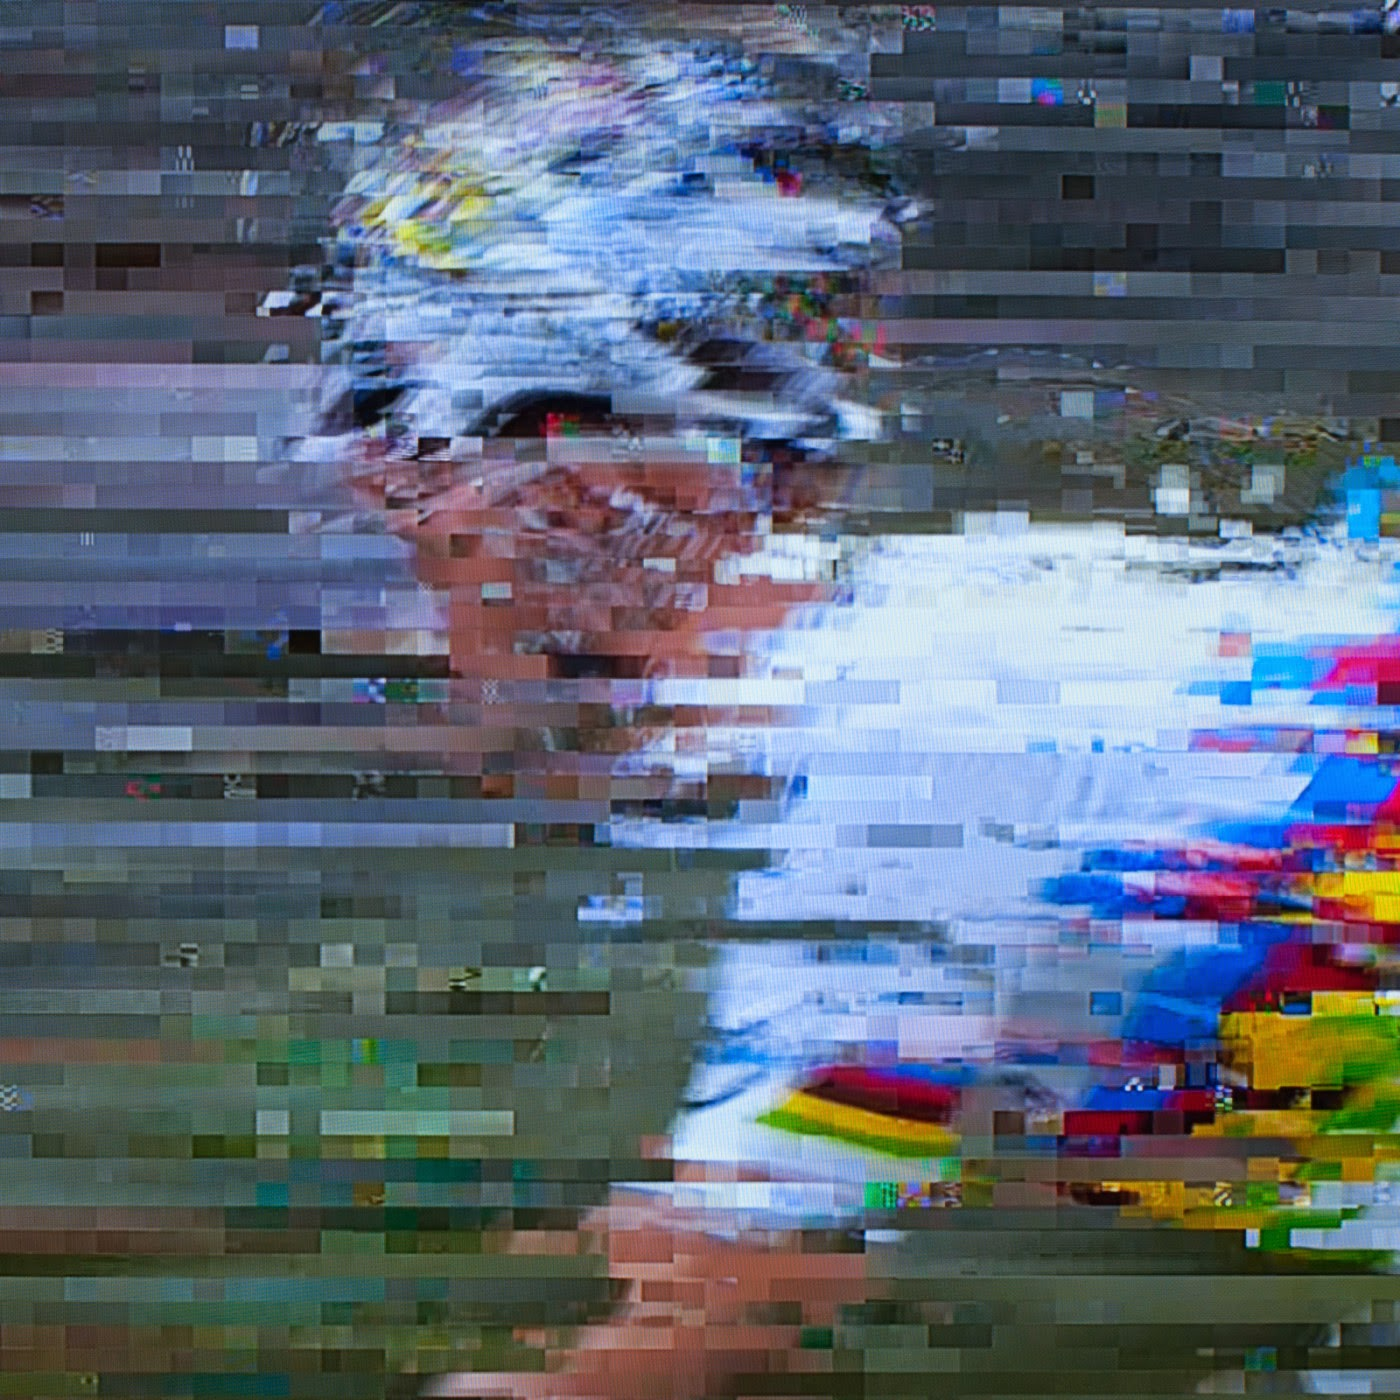 glitch, tim macauley, you won't see this at MoMA, le tour de france, 2014, abstract, abstraction, tv coverage, signal loss, noise to signal ratio, photographic art, graphic, digital, noise, signal, uci, world champion